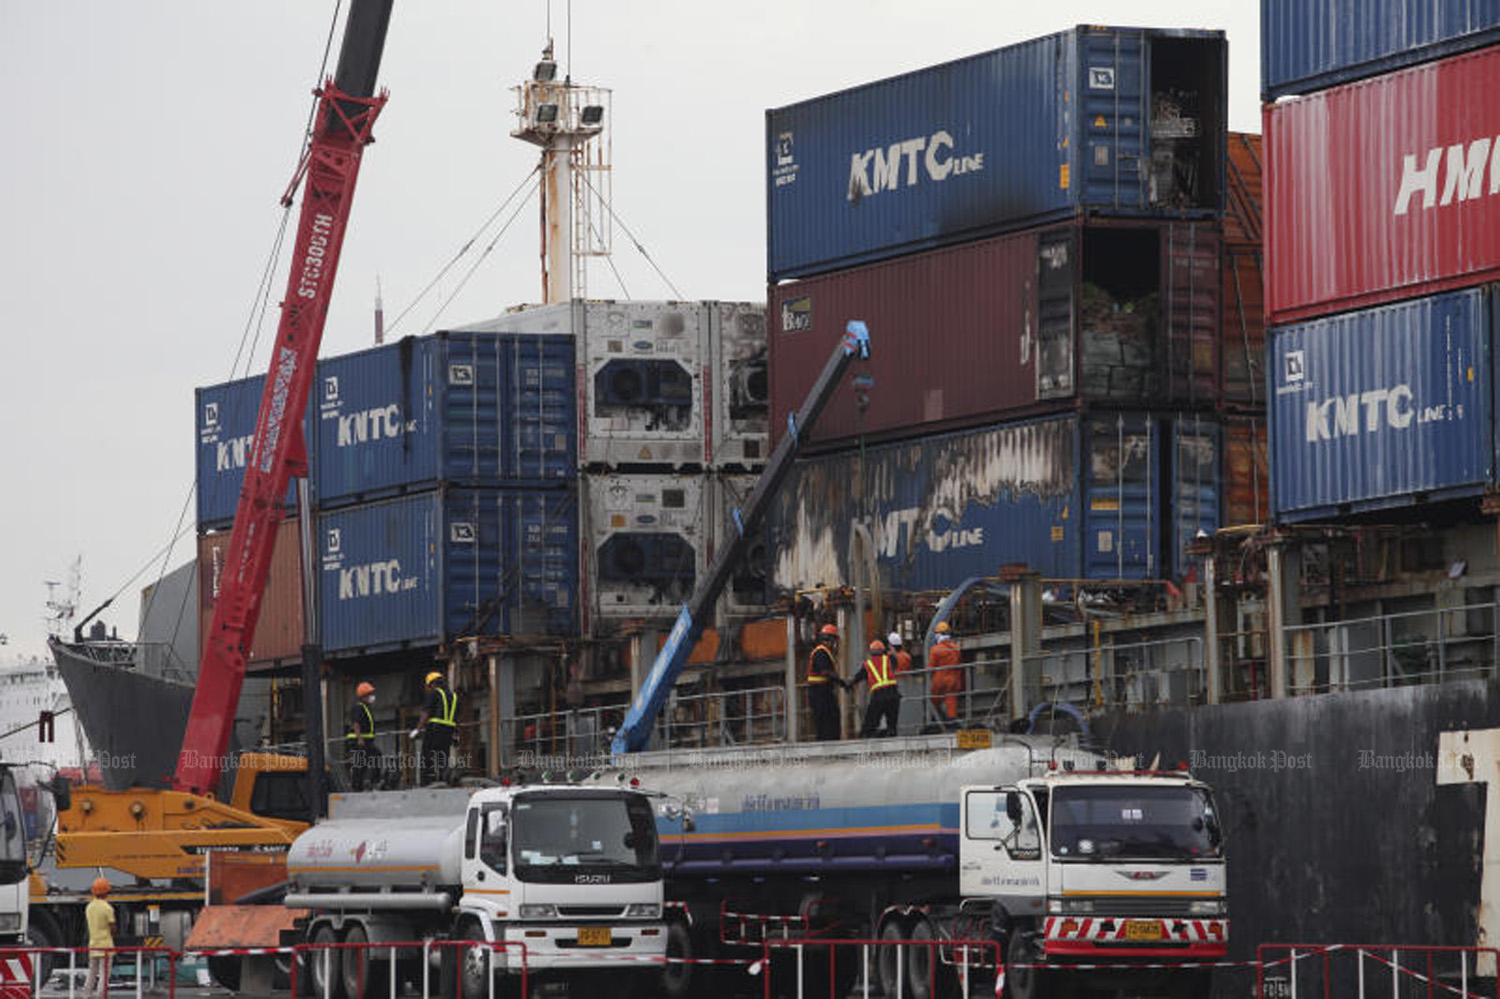 SCENE OF THE BLAZE: Port officials inspect the fire-damaged containers on board the 'KMTC Hong Kong' vessel berthed at Laem Chabang Port in Chon Buri's Sri Racha district. On the morning of May 25, a fire broke aboard the ship carrying containers loaded with chemicals. (Photo by Apichart Jinakul)